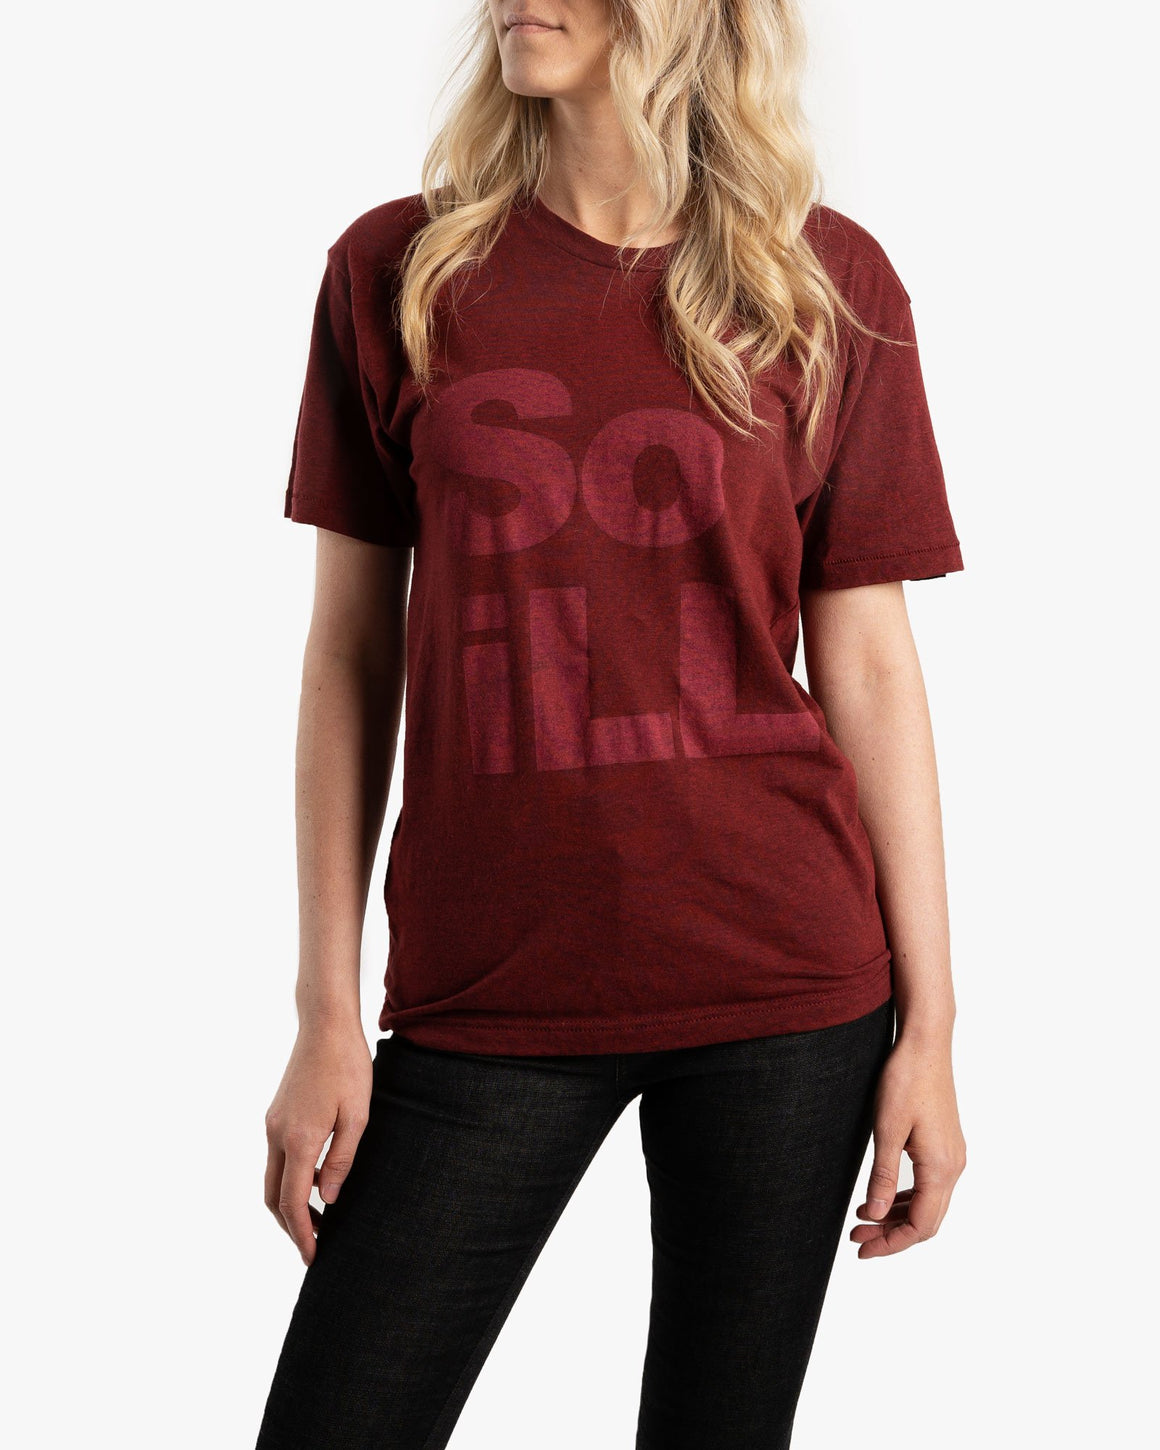 Maroon Heather - So iLL Stacked Logo Tee